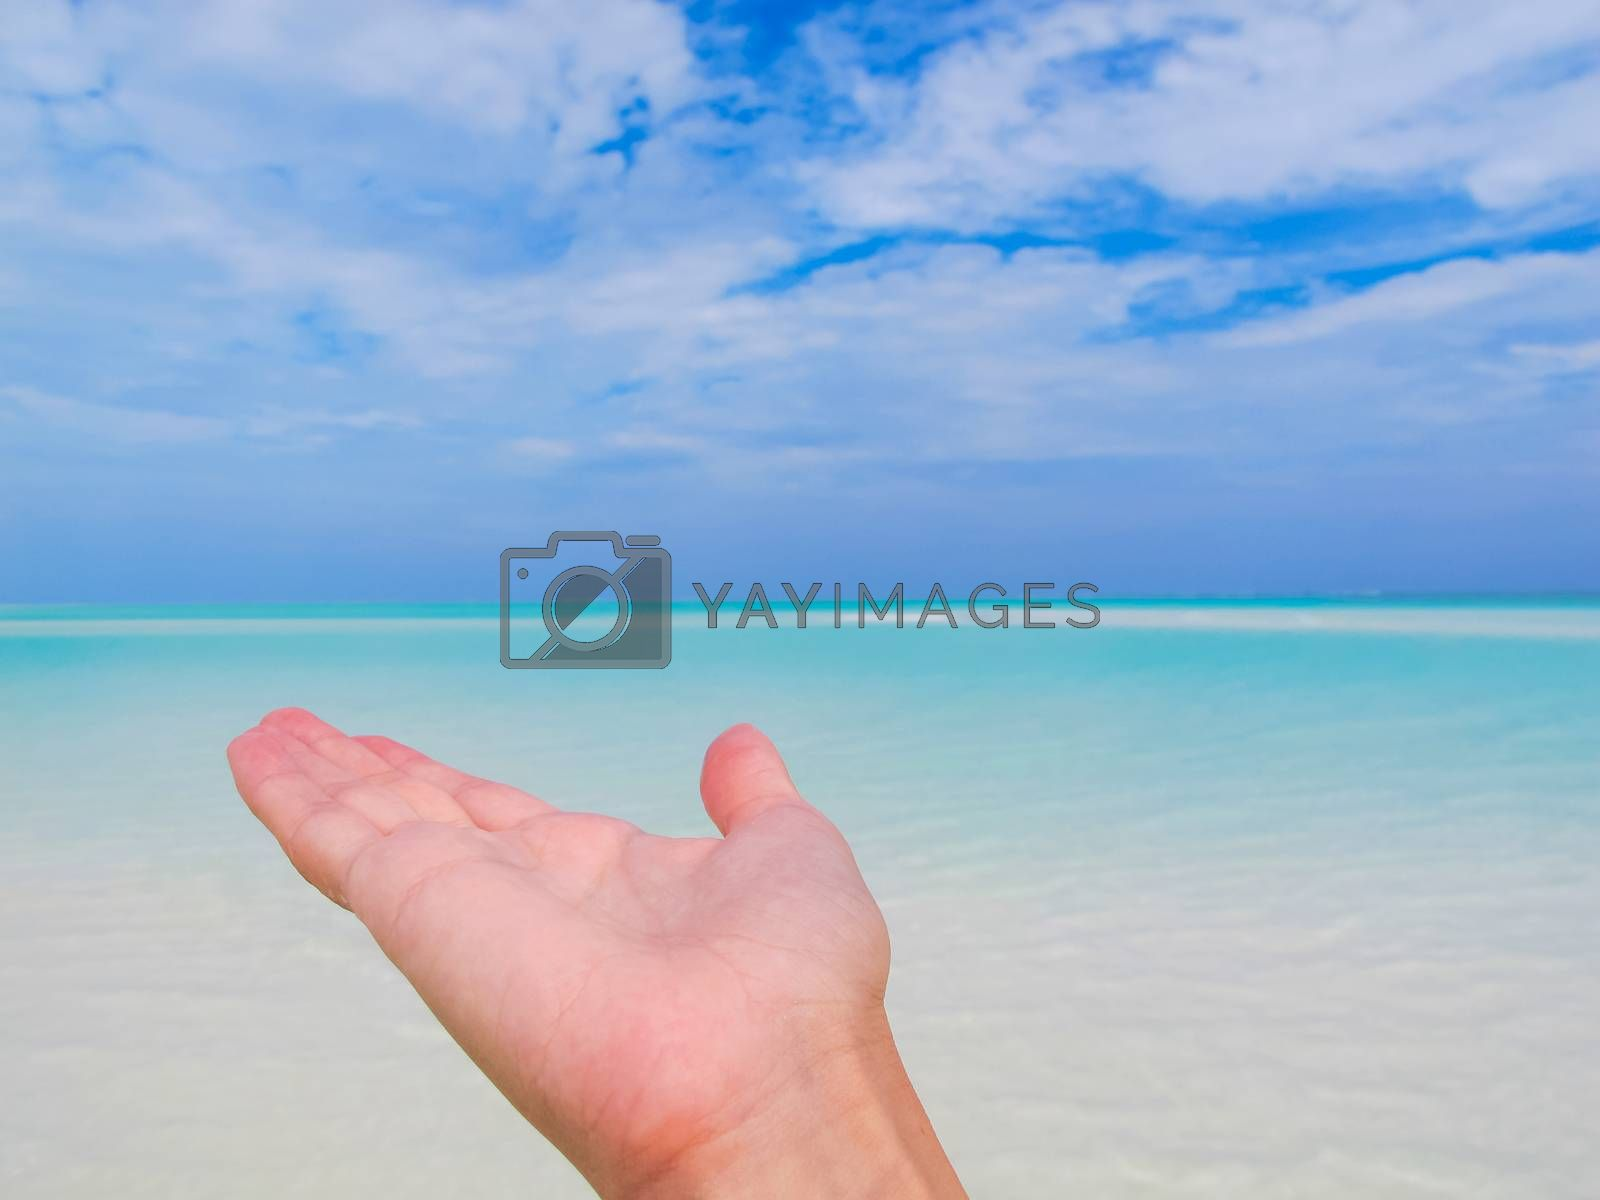 Showing hand, beach at the background